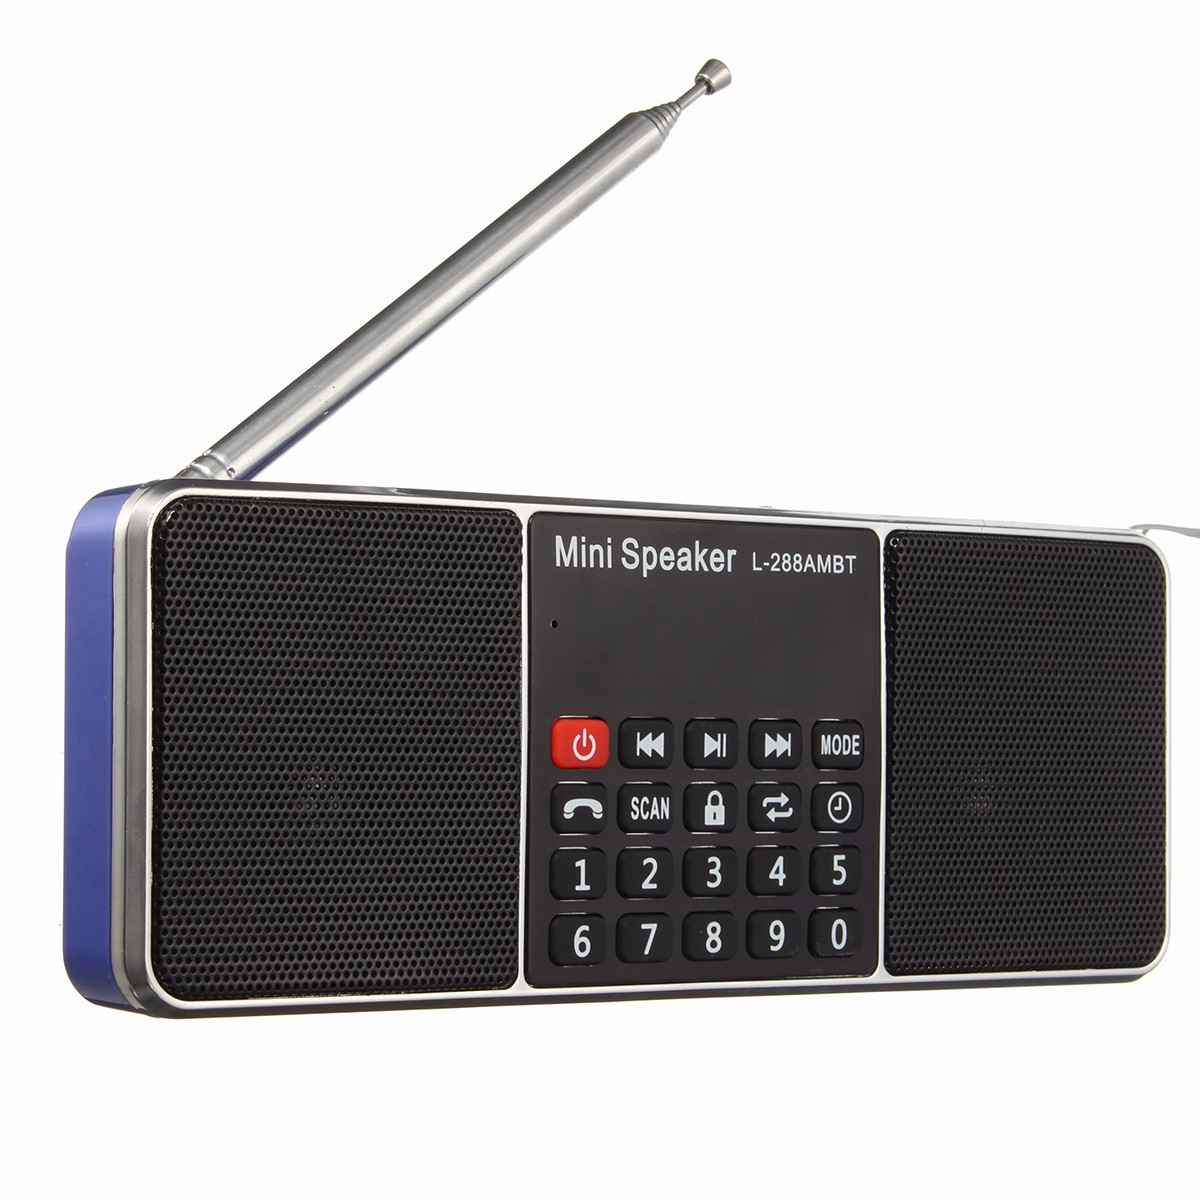 LCD Display Mini Portable Wireless Stereo Super Brass Dual Speaker Radio Music MP3 Player Power Bank USB Disk Micro SD/TF FM Radio AUX Clock Function